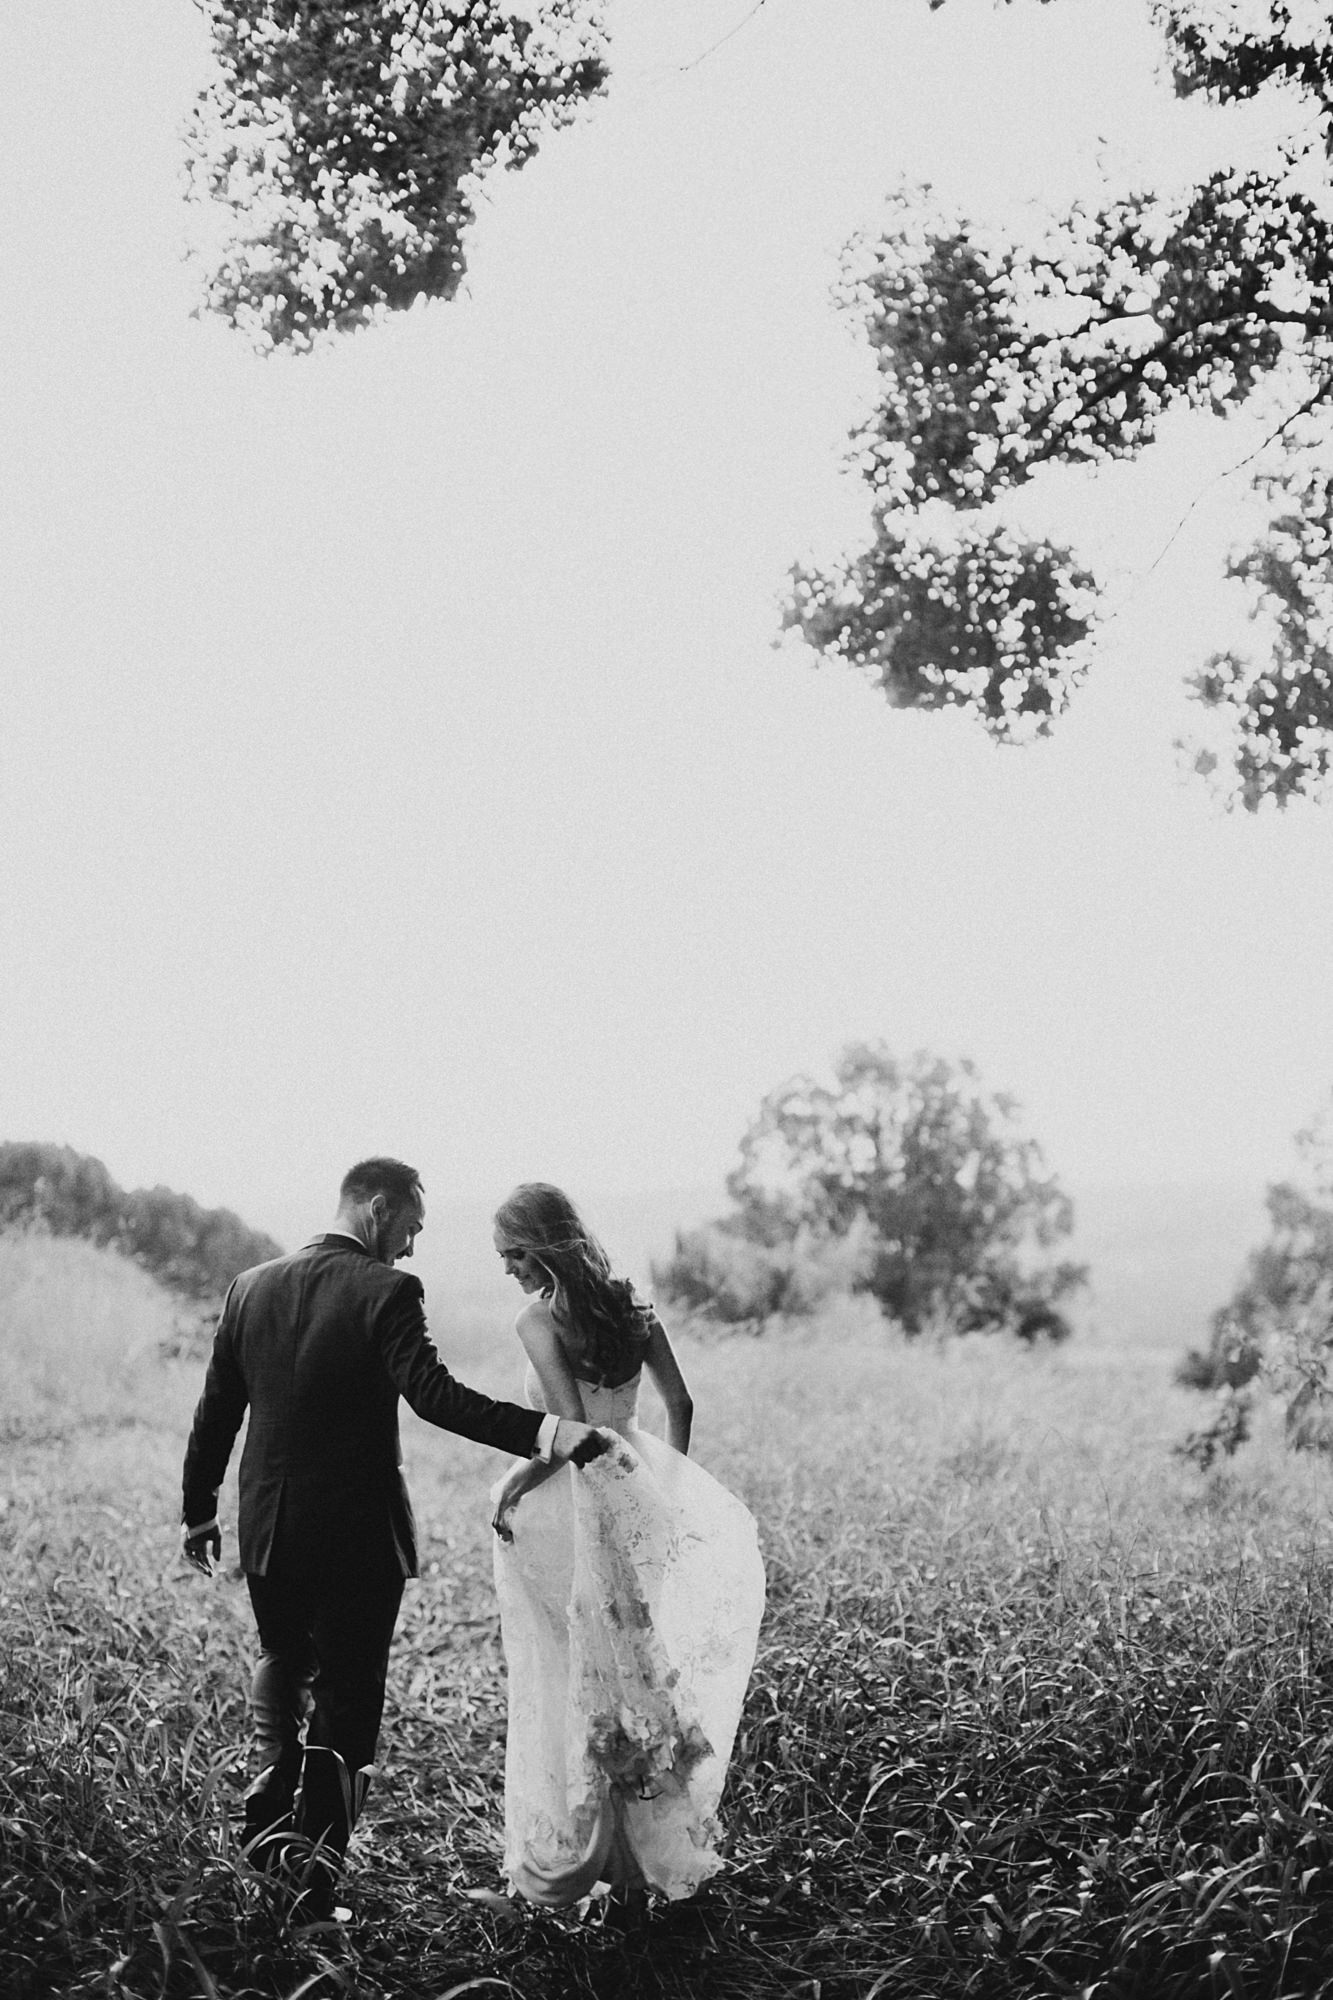 Bride and groom walking through field- photo by Dan O'Day